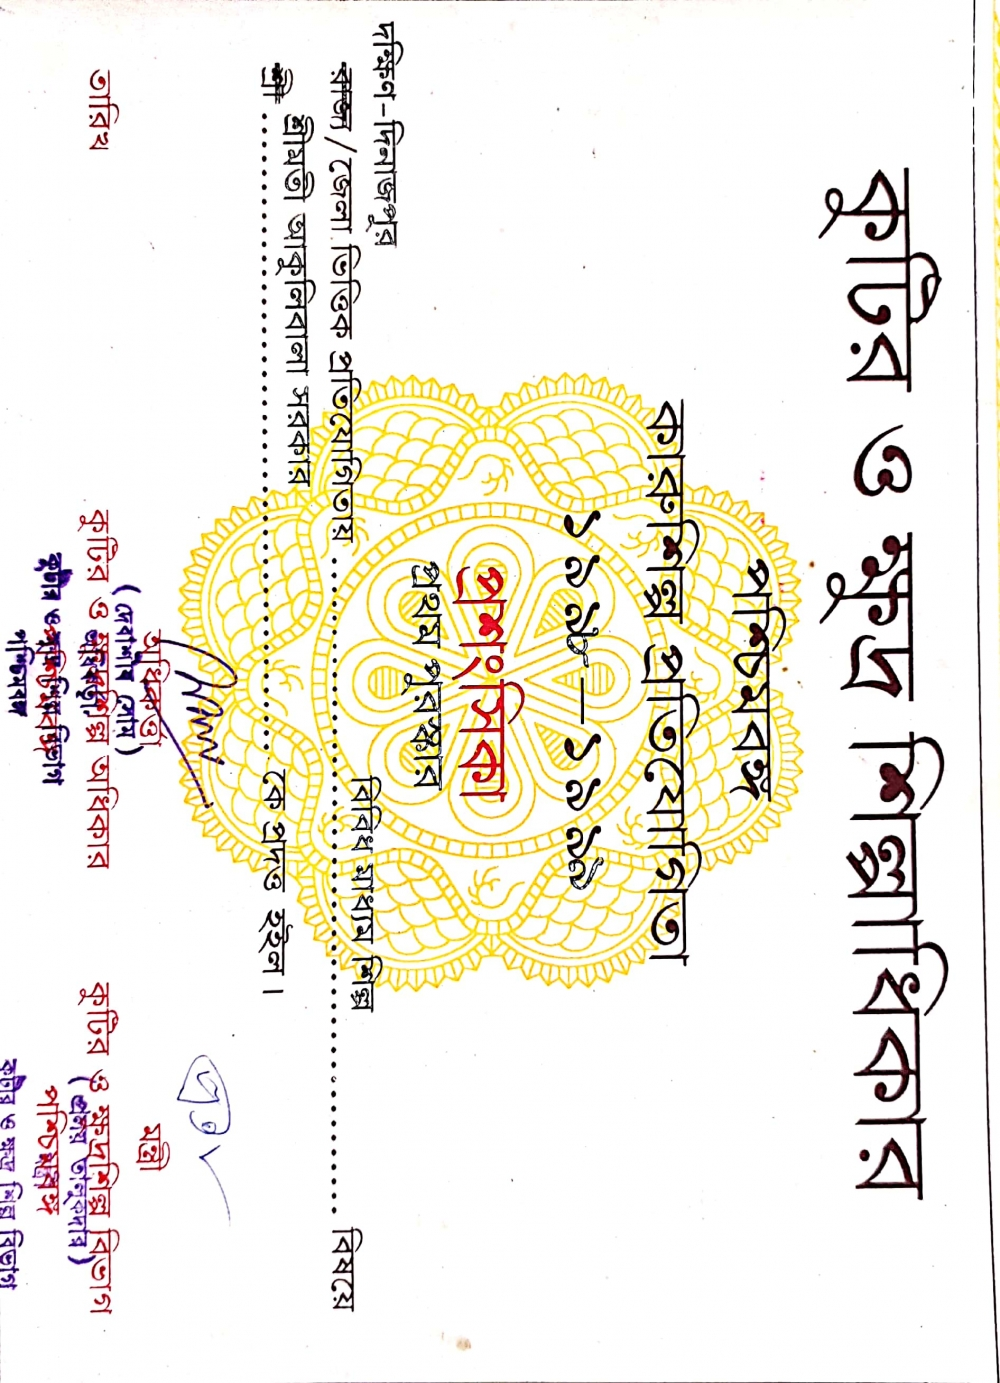 Fig. 4: Akulbala Sarkar was awarded the best performer in a performing arts competition organised by the Rural Handicrafts and Micro Small and Medium Enterprises Department, Government of West Bengal in 1999